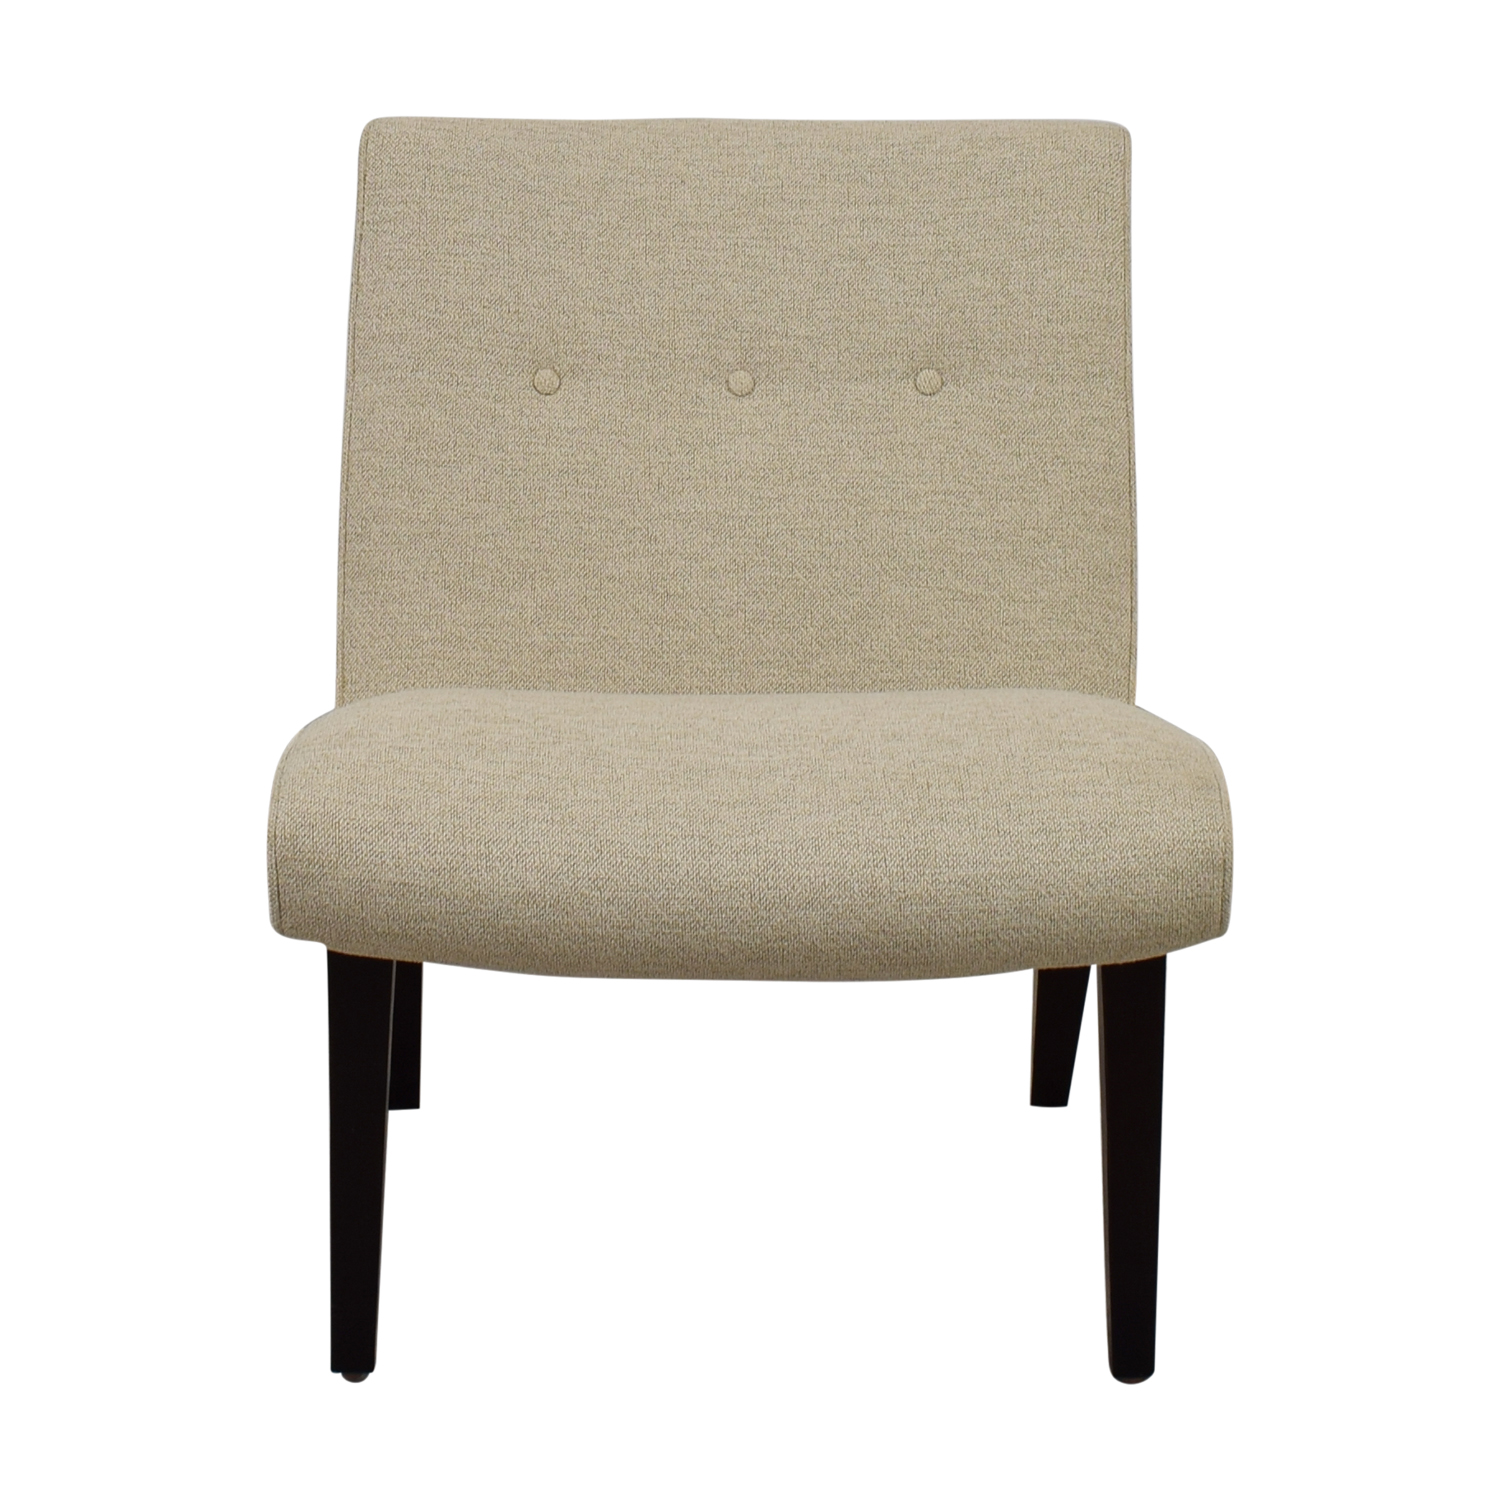 shop Room & Board Delia Tatum Natural Accent Chair Room & Board Chairs